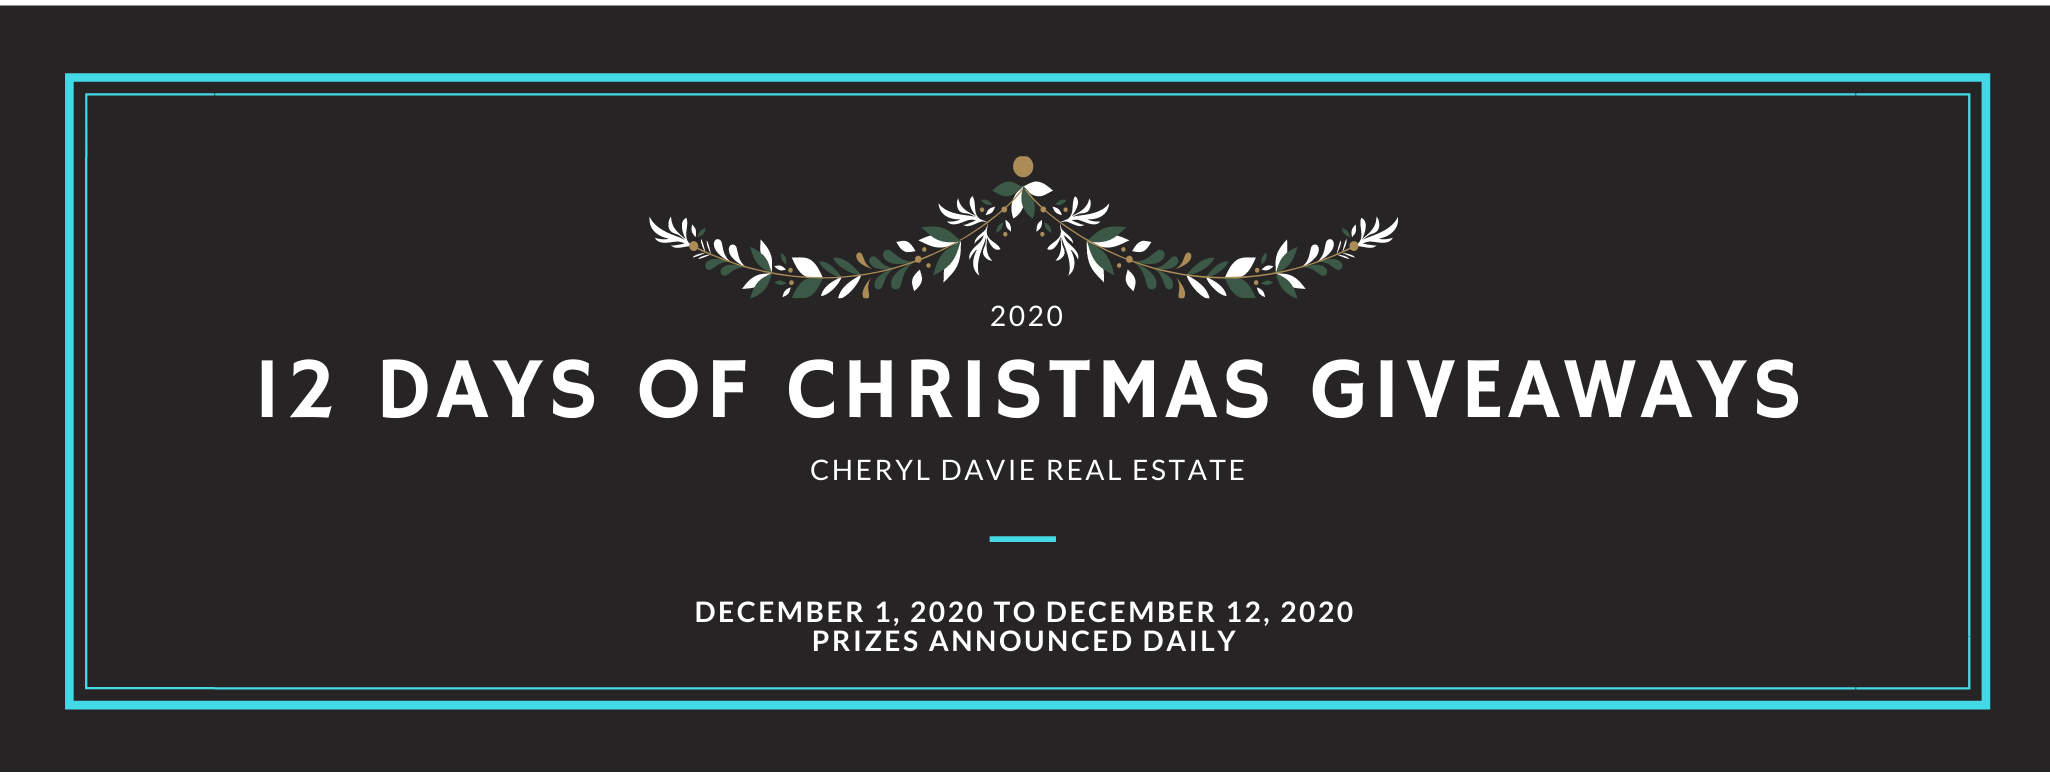 Cheryl's 12 Days of Christmas Giveaways